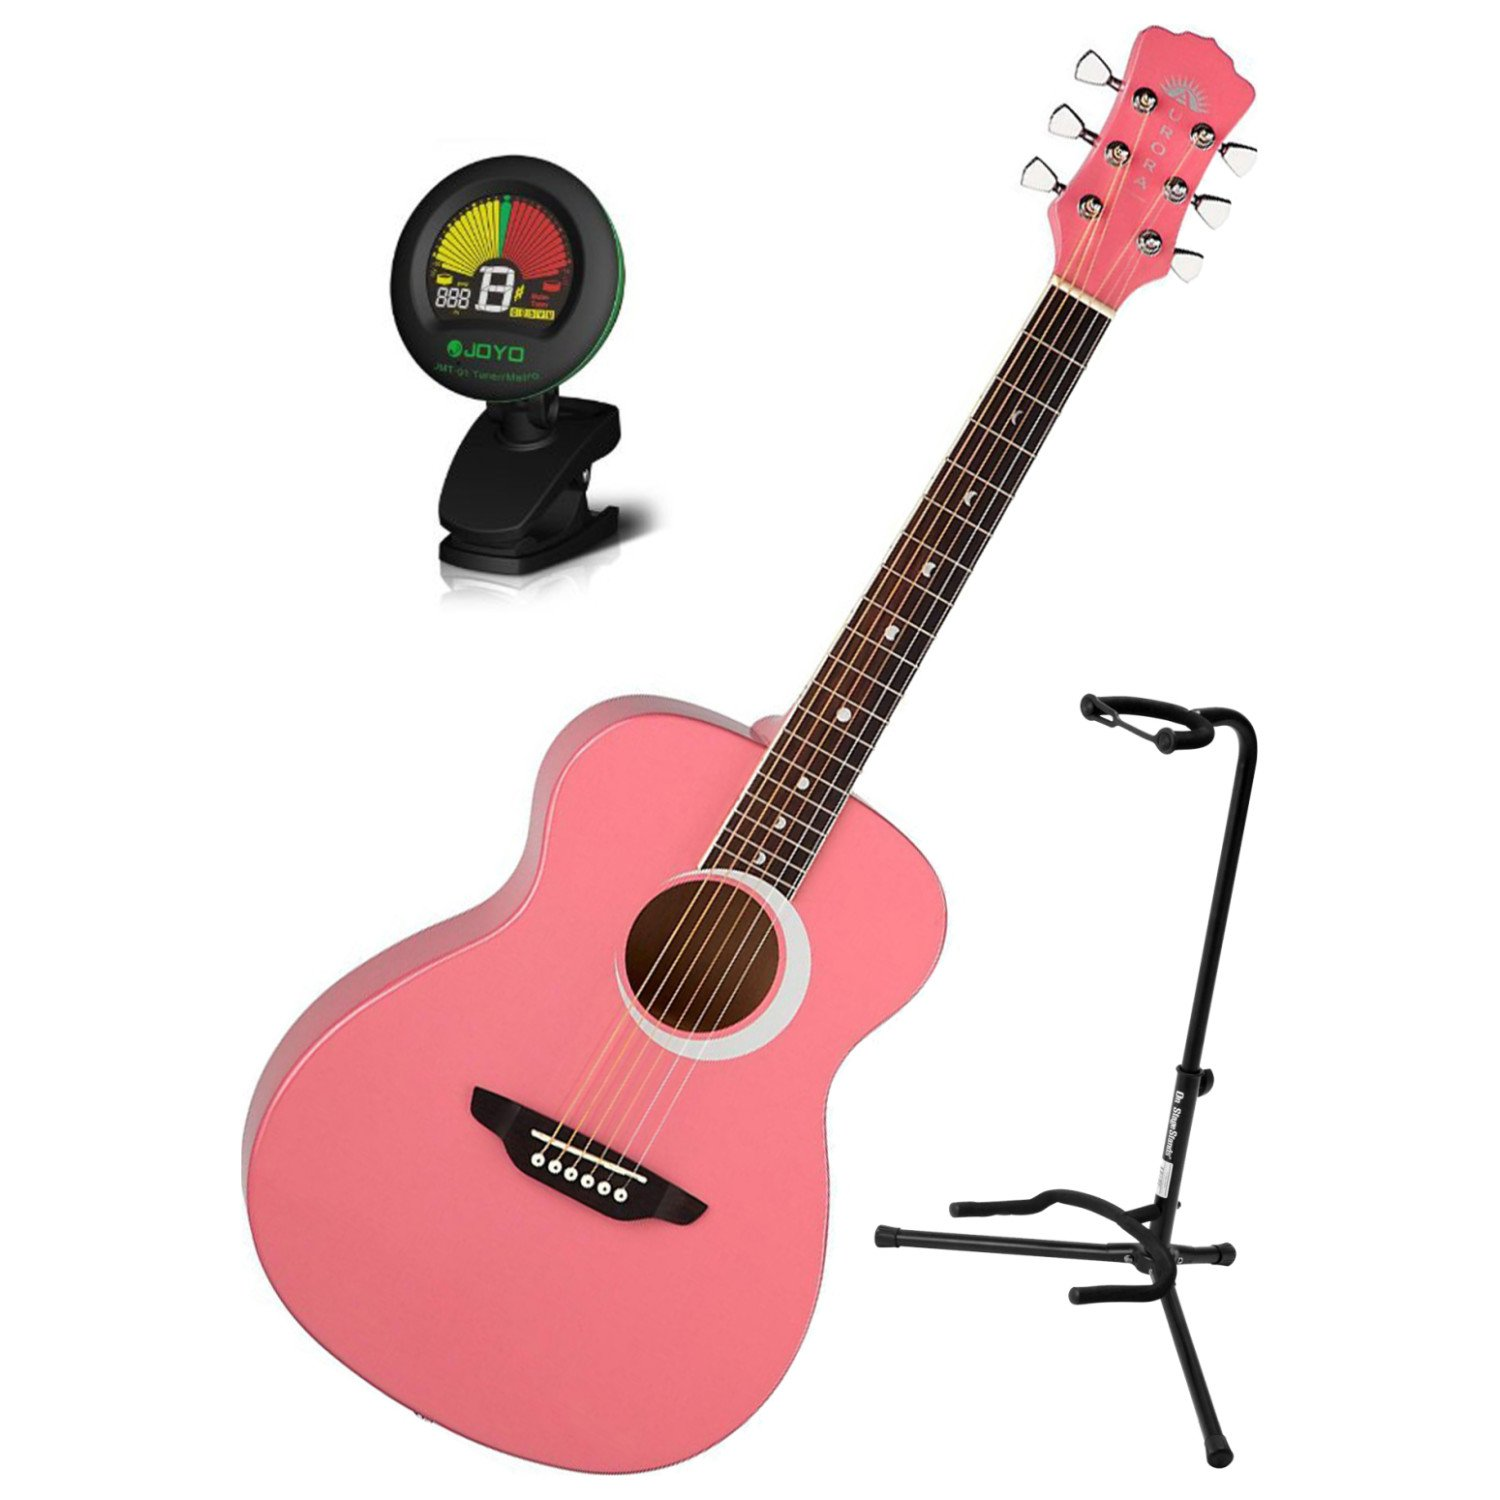 Luna Aurora Borealis 3/4 Size MINI Acoustic Guitar Pink w/ Stand and Tuner by LUNA